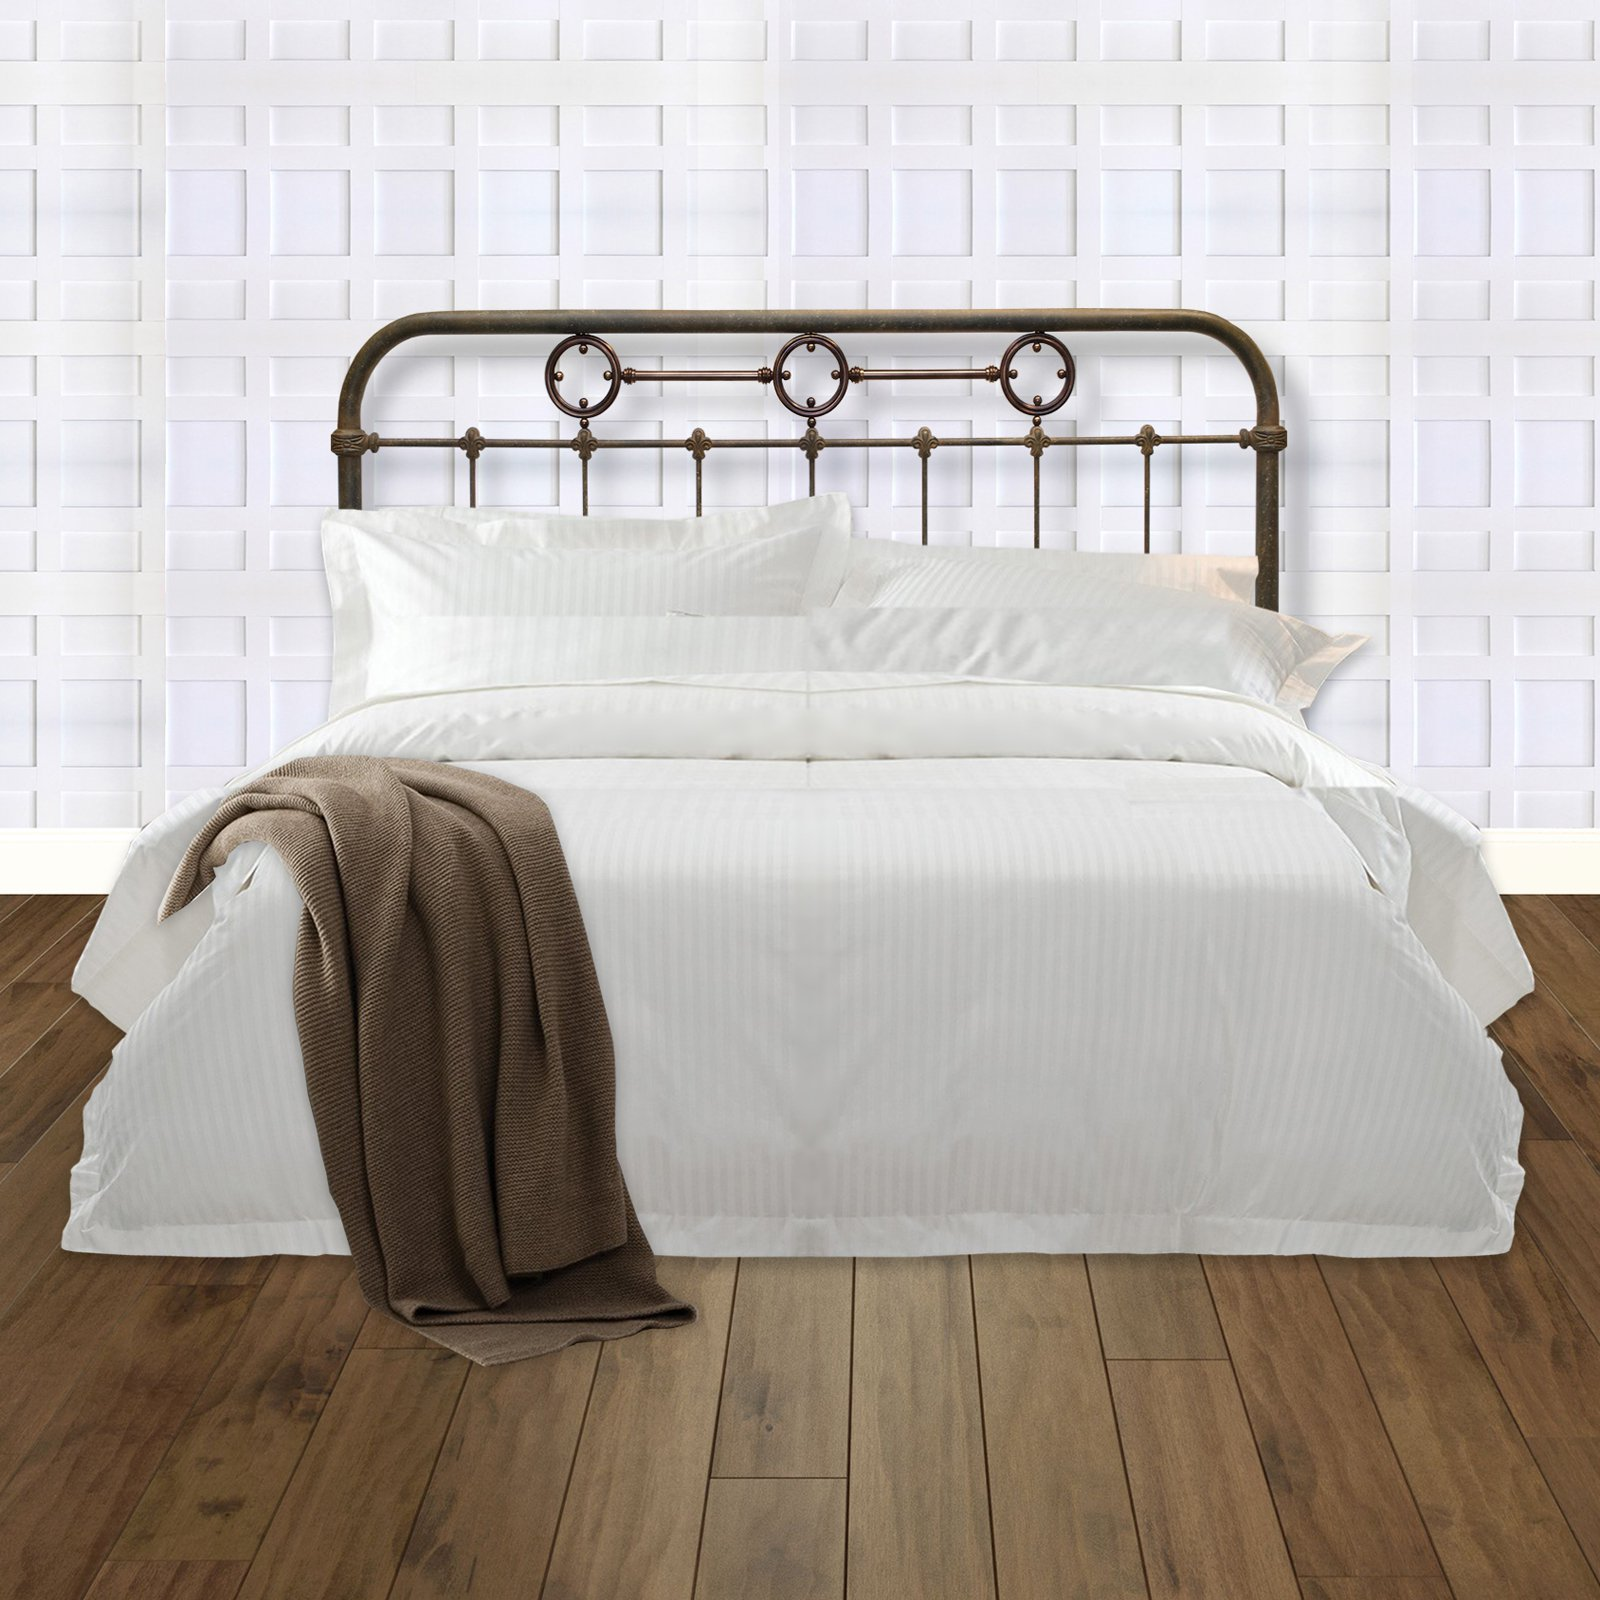 Fashion Bed Group Madera Headboard